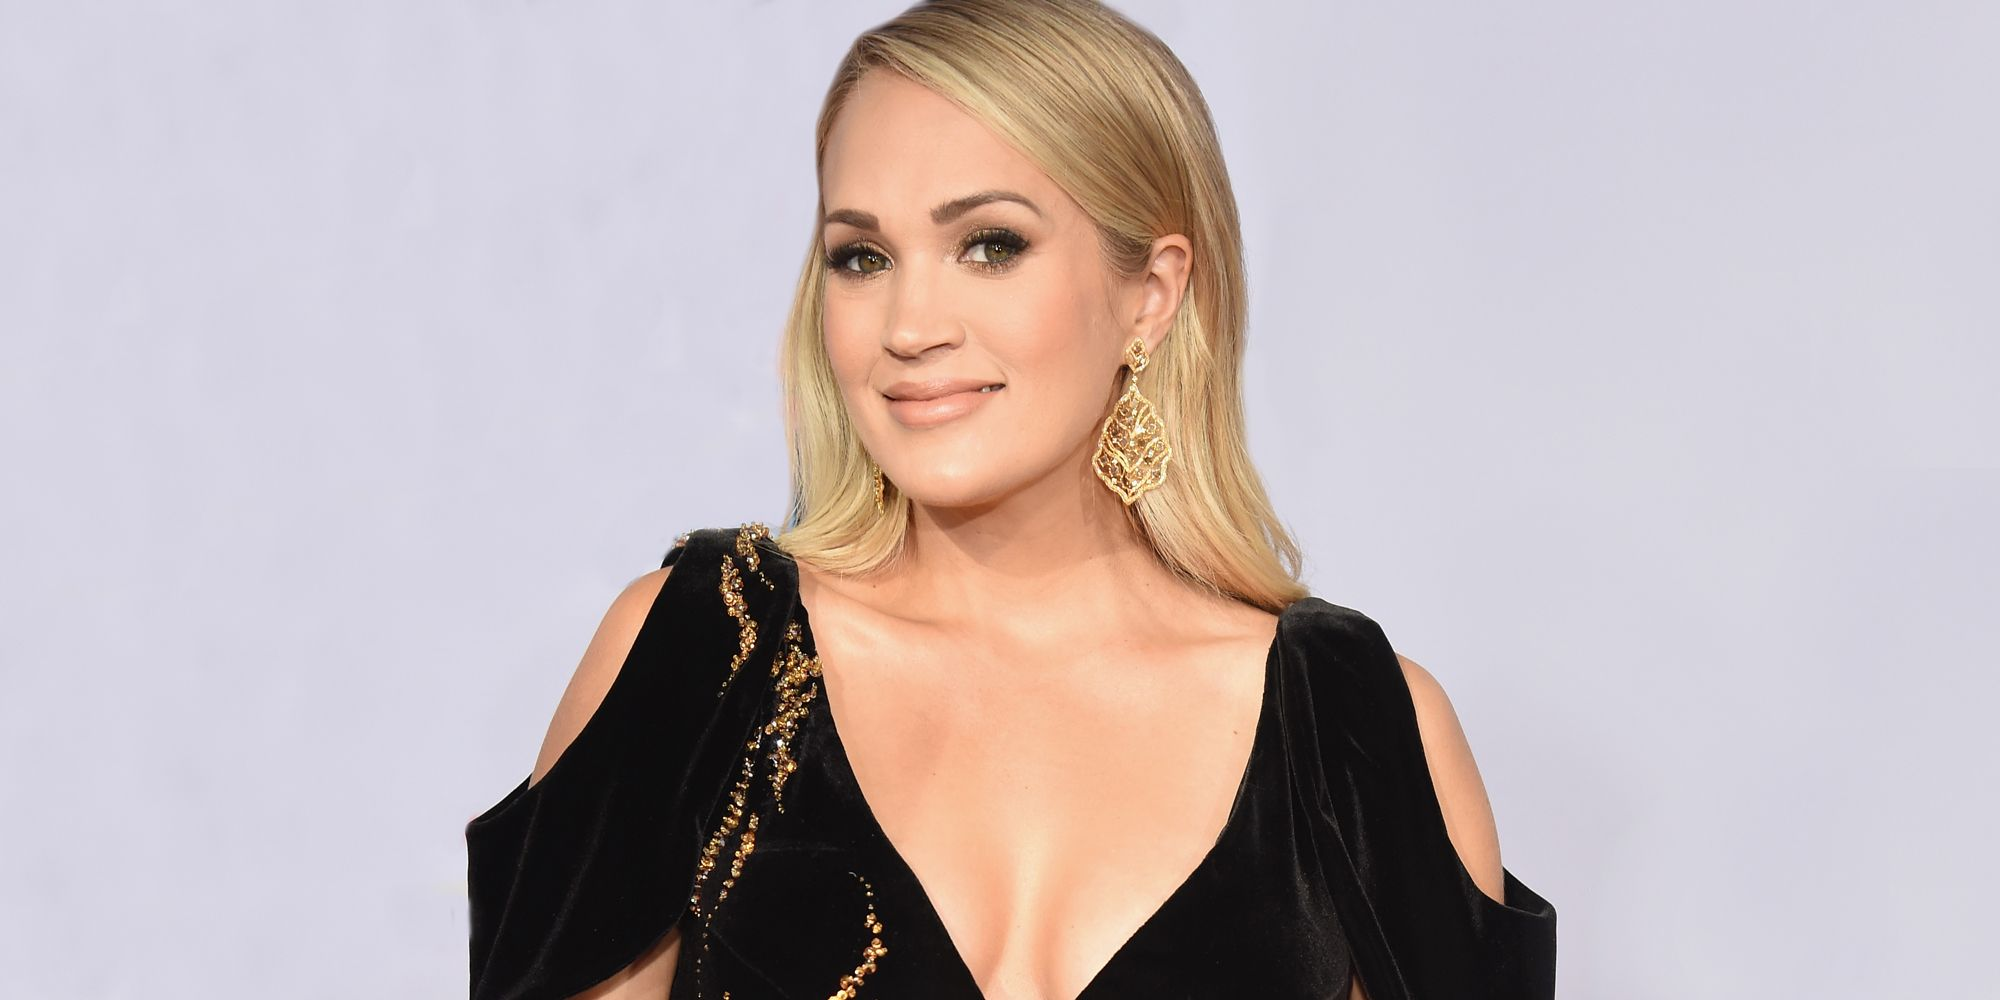 Carrie underwood images 63